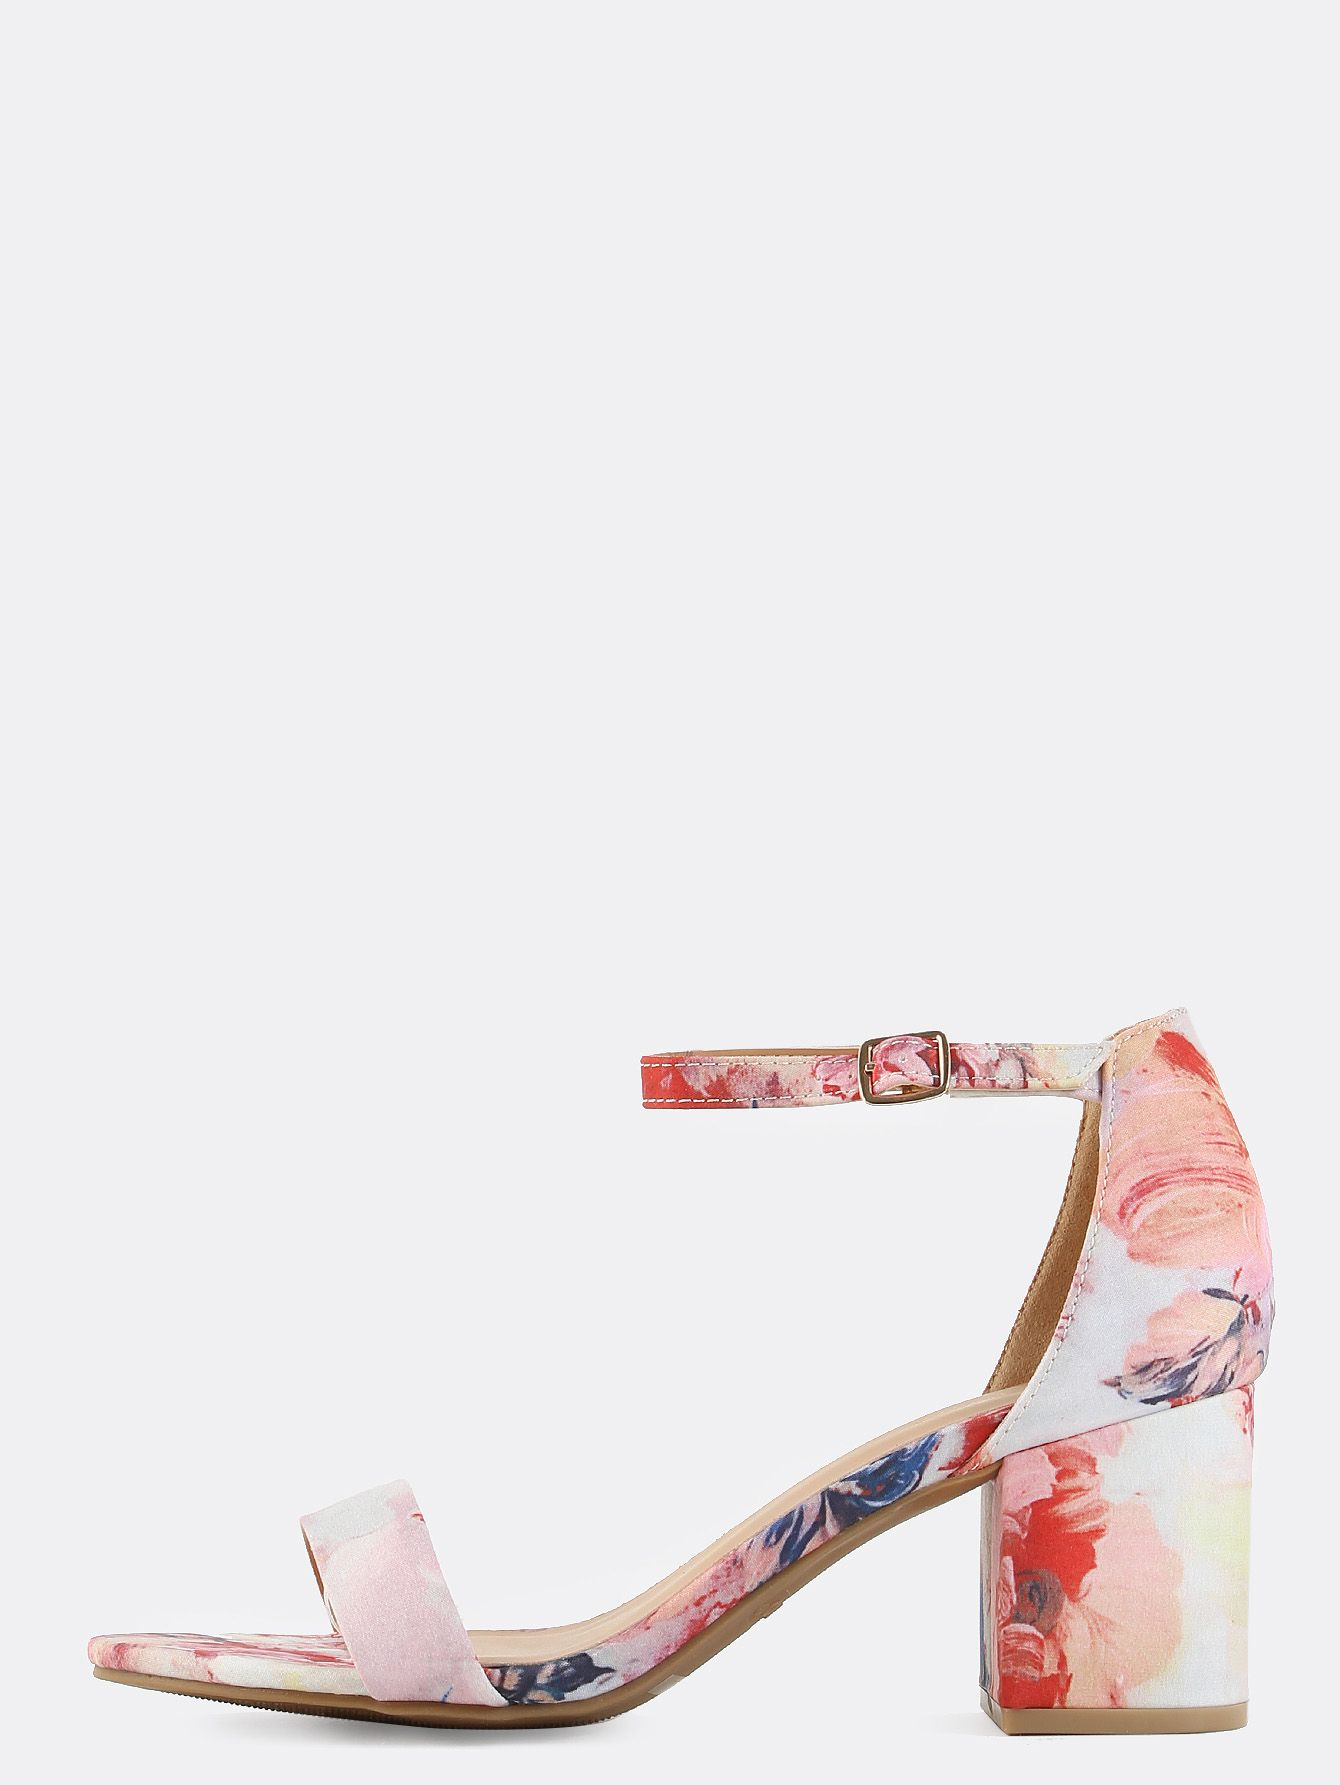 4e2c141debc03 Stay sweet and lovely with these Pastel Floral Block Heels! Features an  open toe, floral fabric upper, and an adjustable ankle strap.